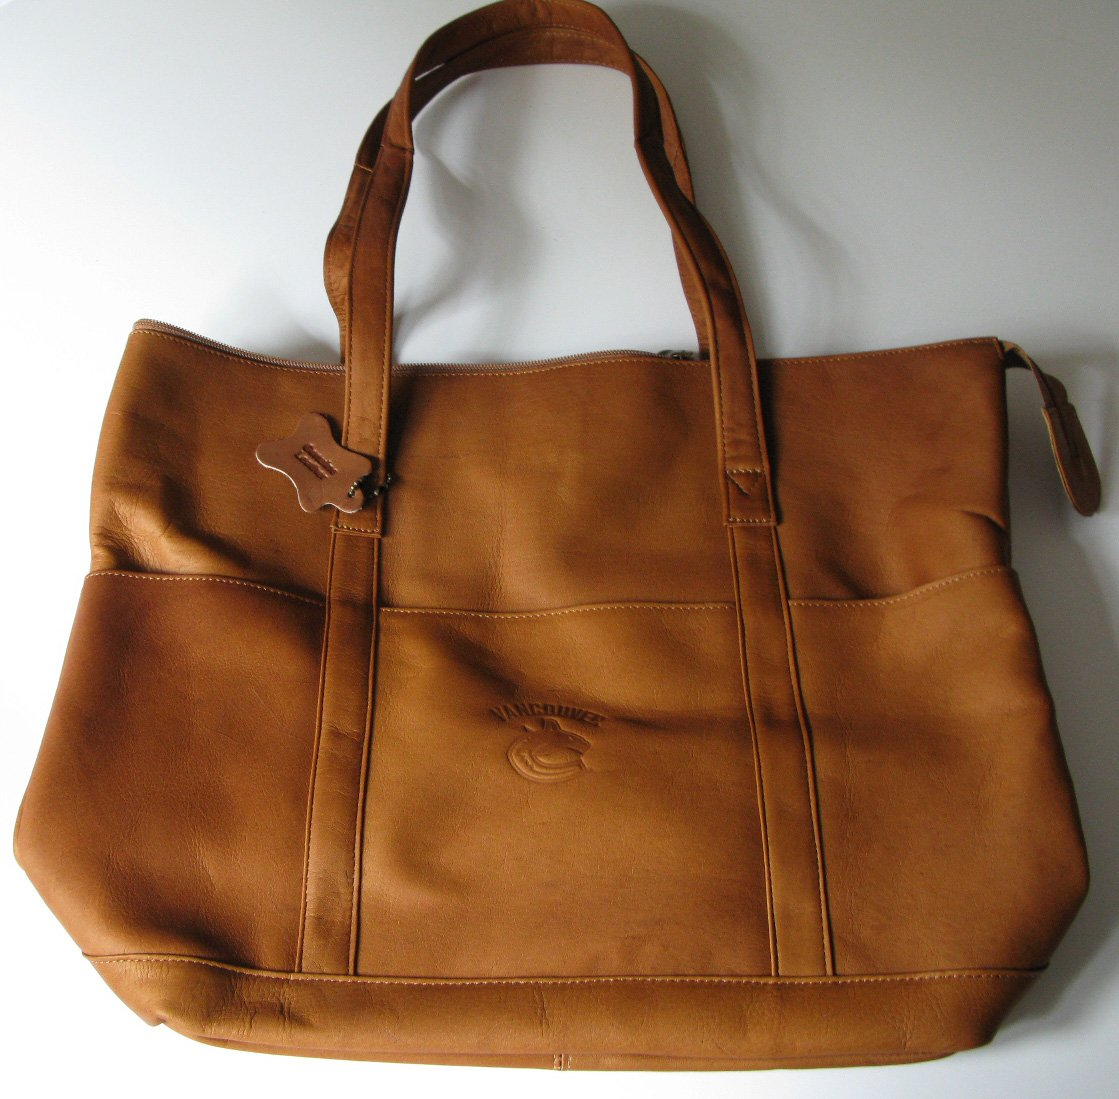 Vancouver Canucks Leather Tote Bag Purse Tan